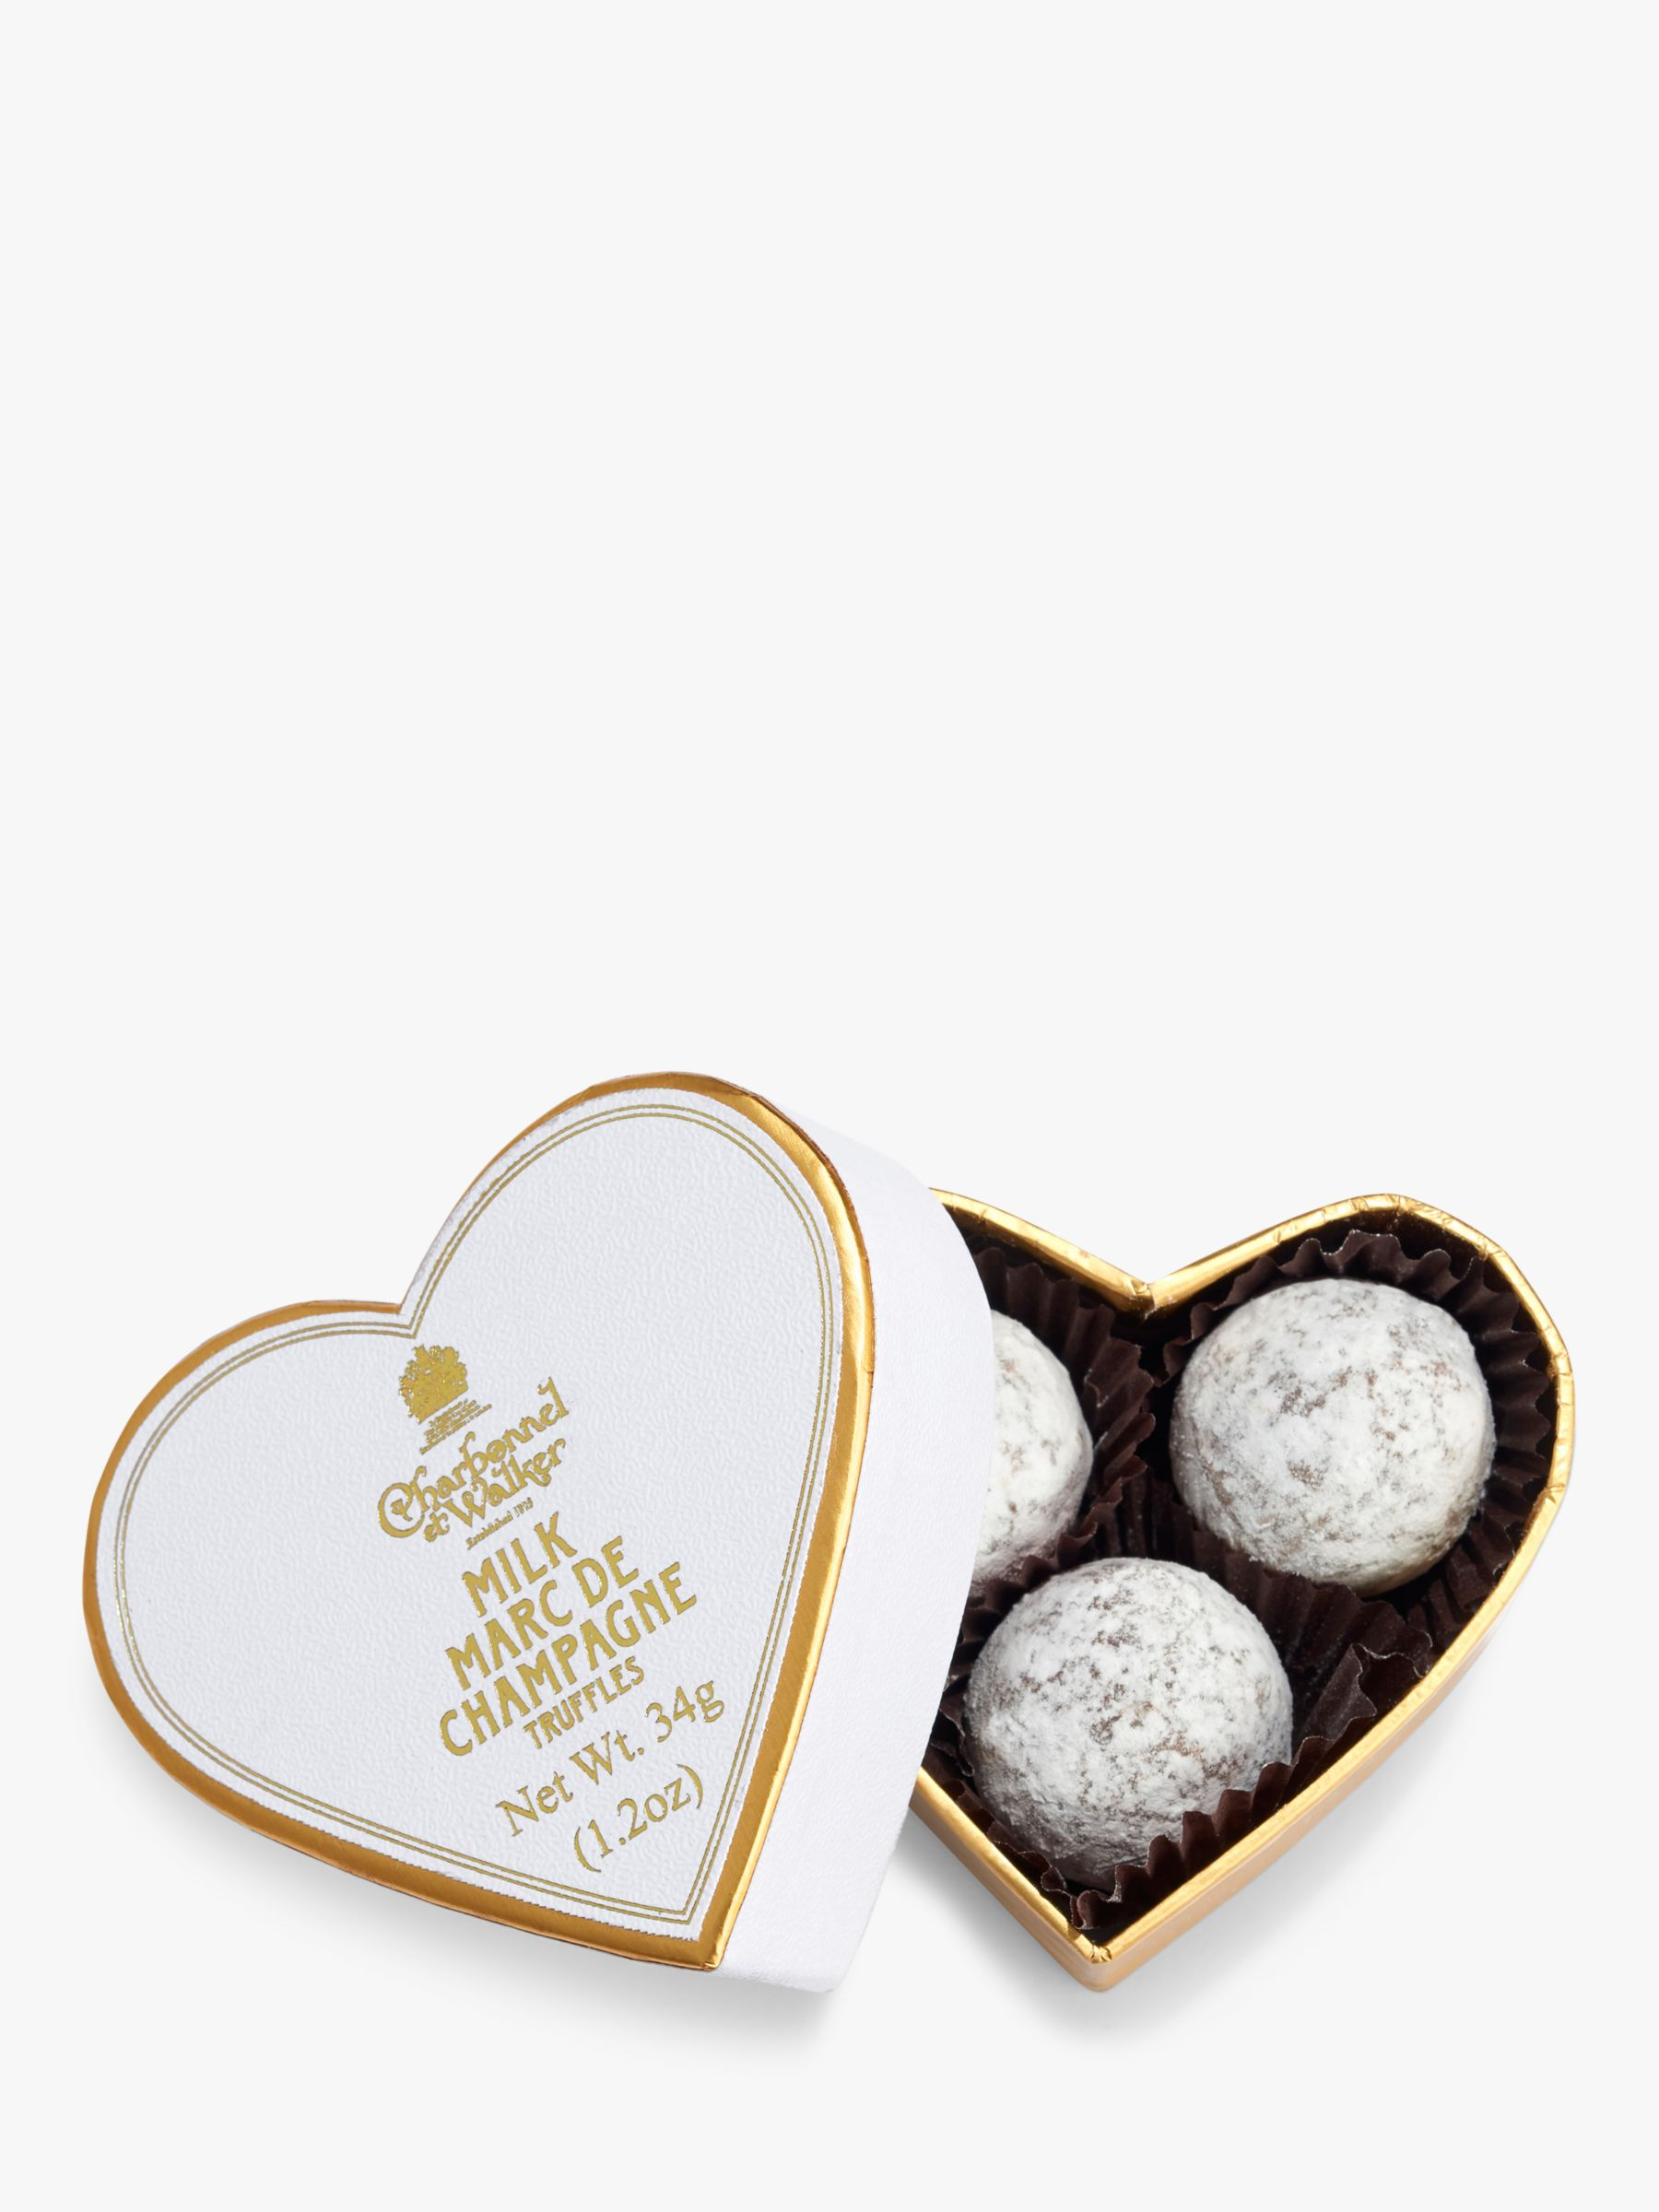 Charbonnel Et Walker Mini White Heart With Milk Chocolate Champagne Truffles, 34g